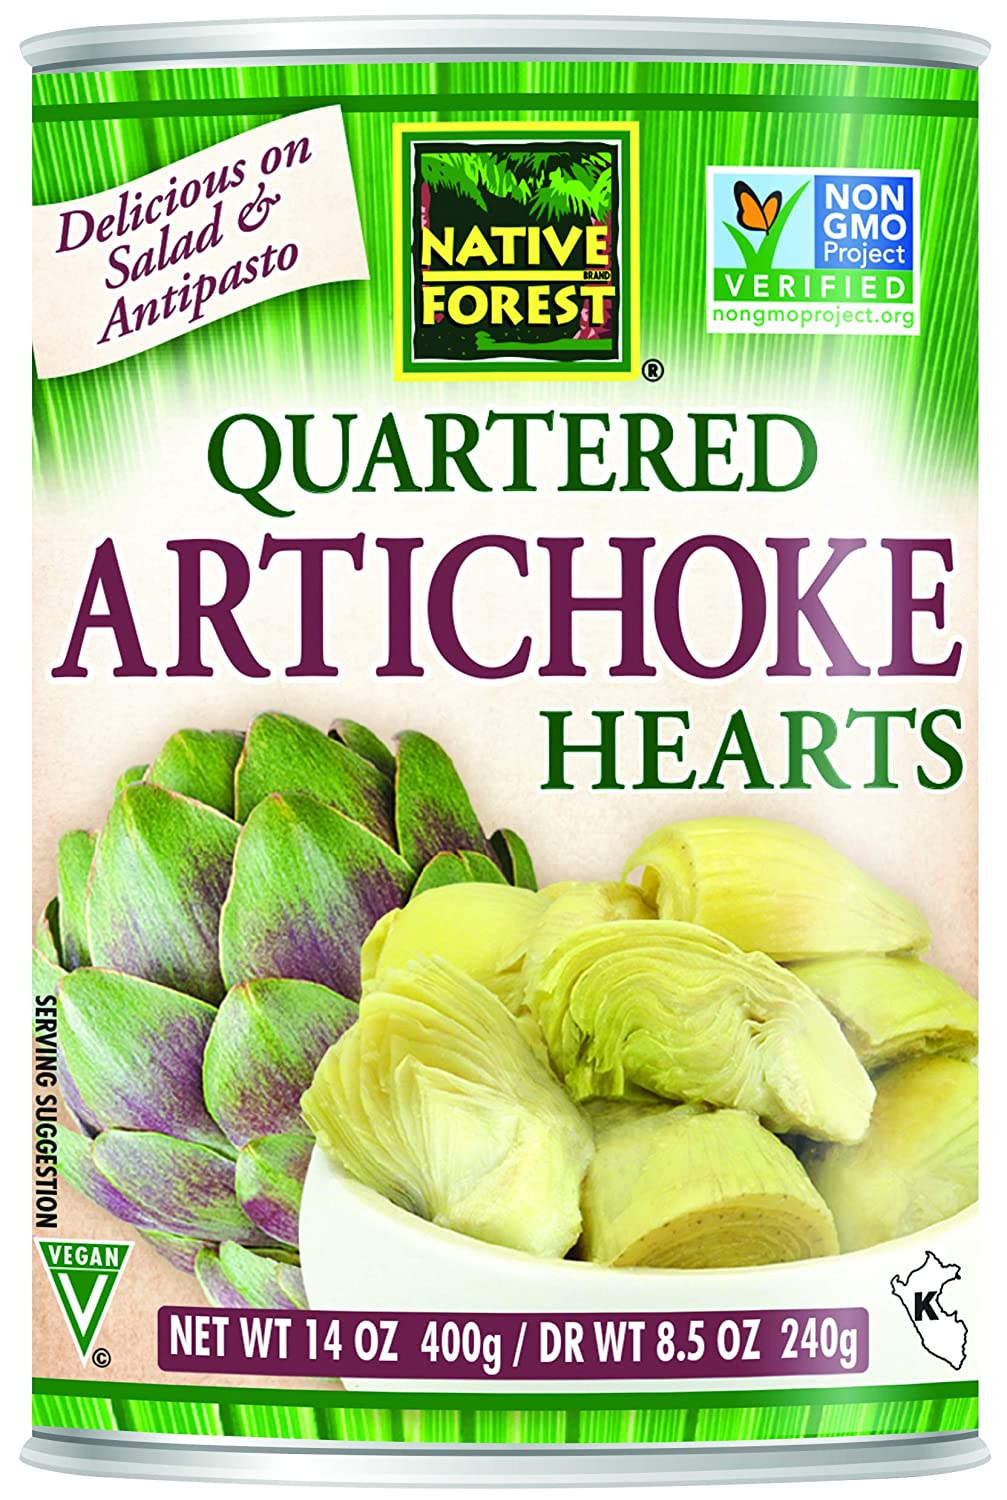 B000F4D50I Native Forest Artichoke Hearts Quartered, 14 Ounce Cans (Pack of 6) 81GHl-ua3tL